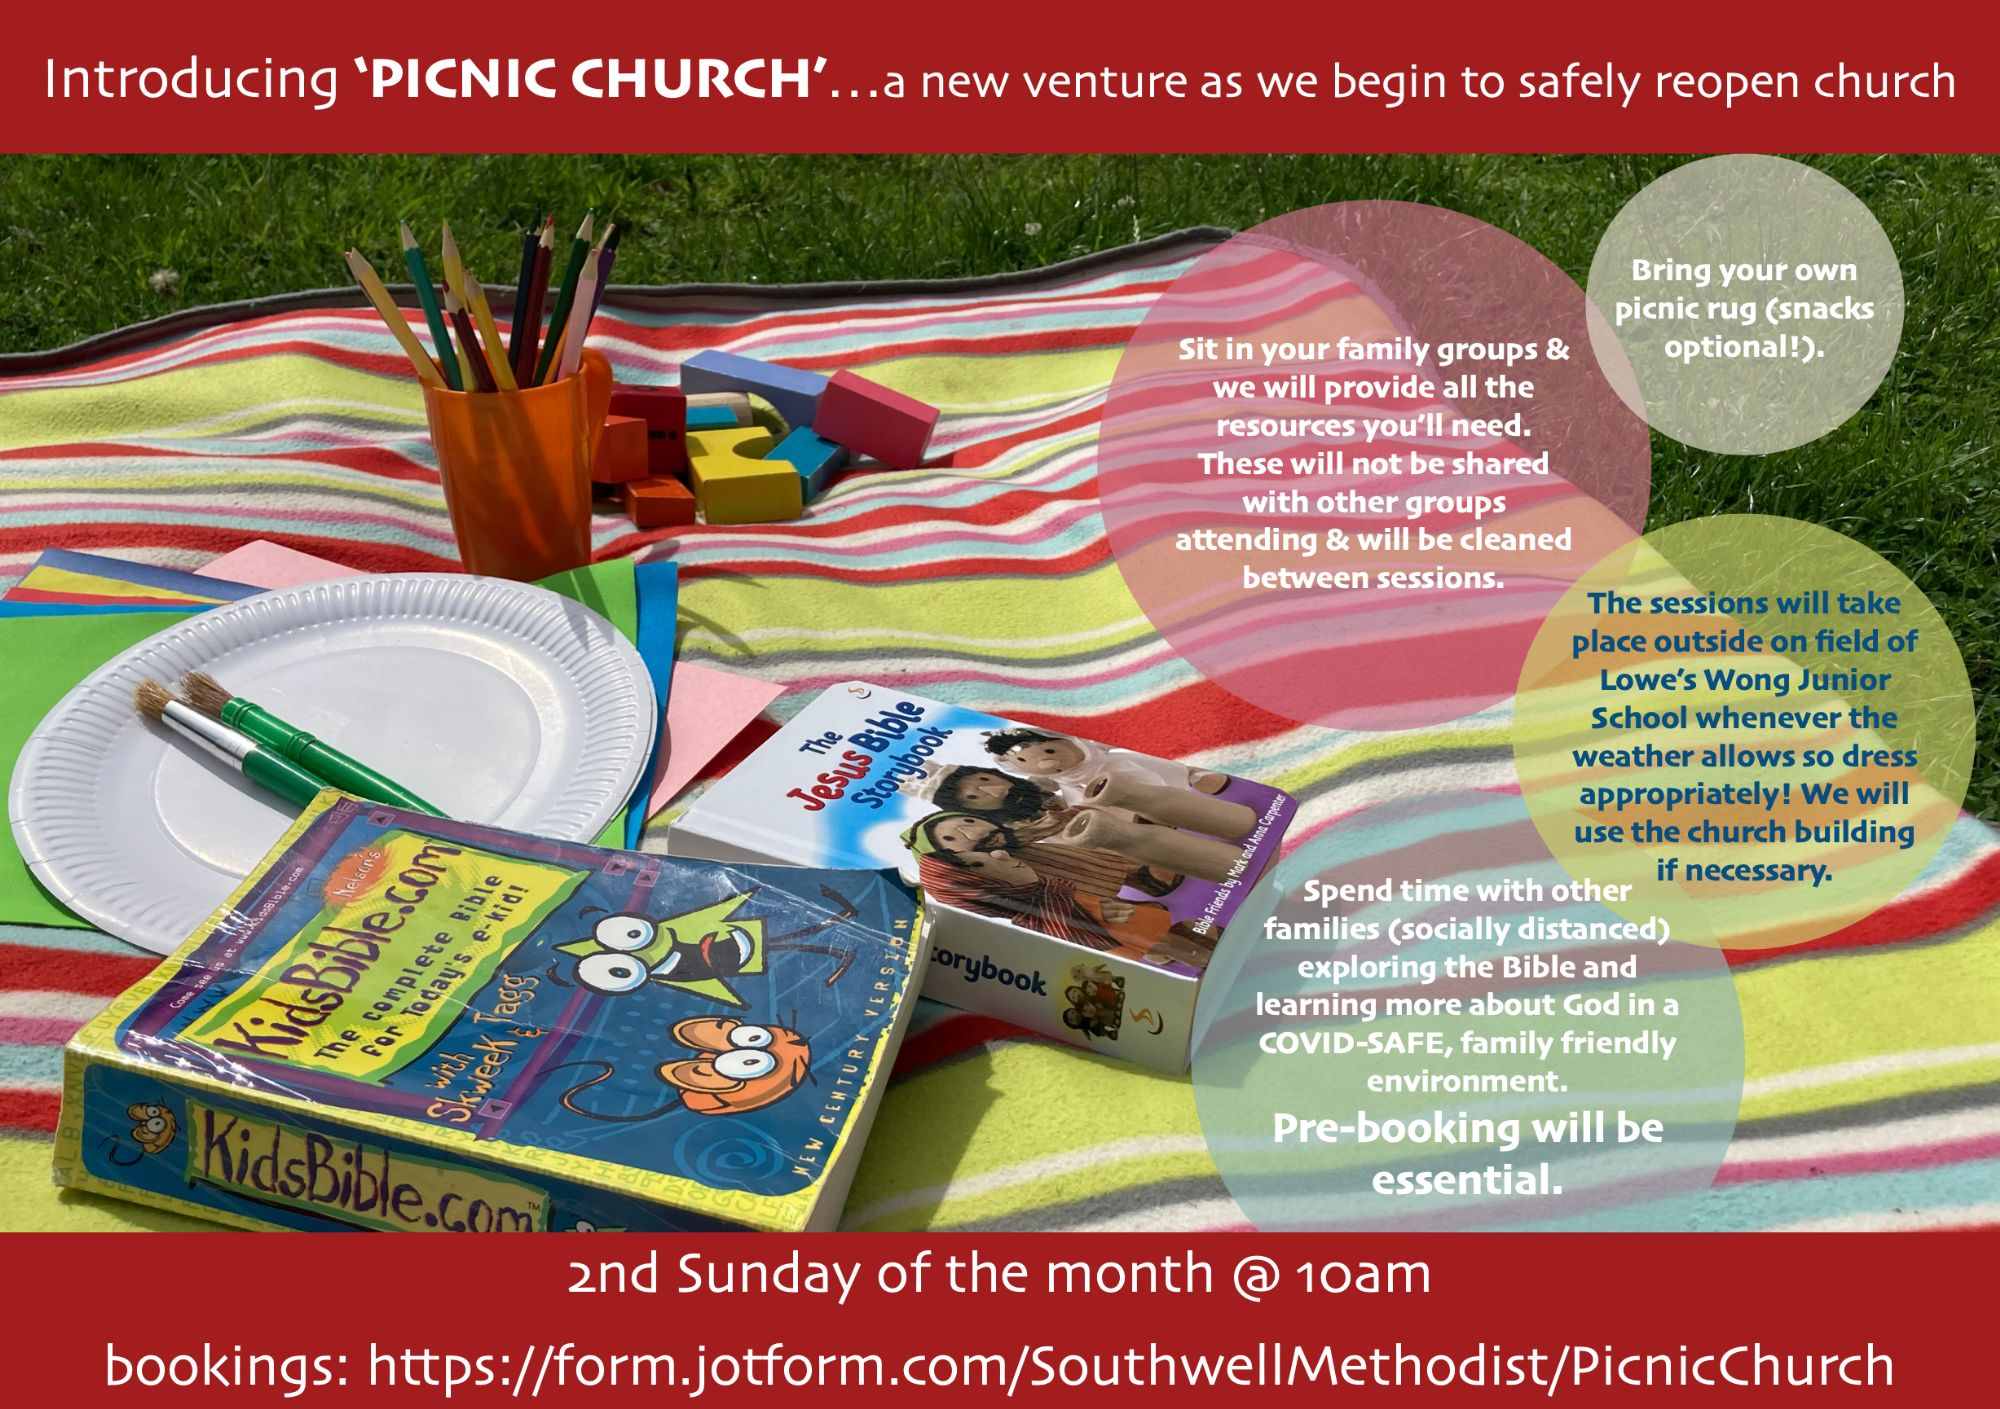 Picnic Church